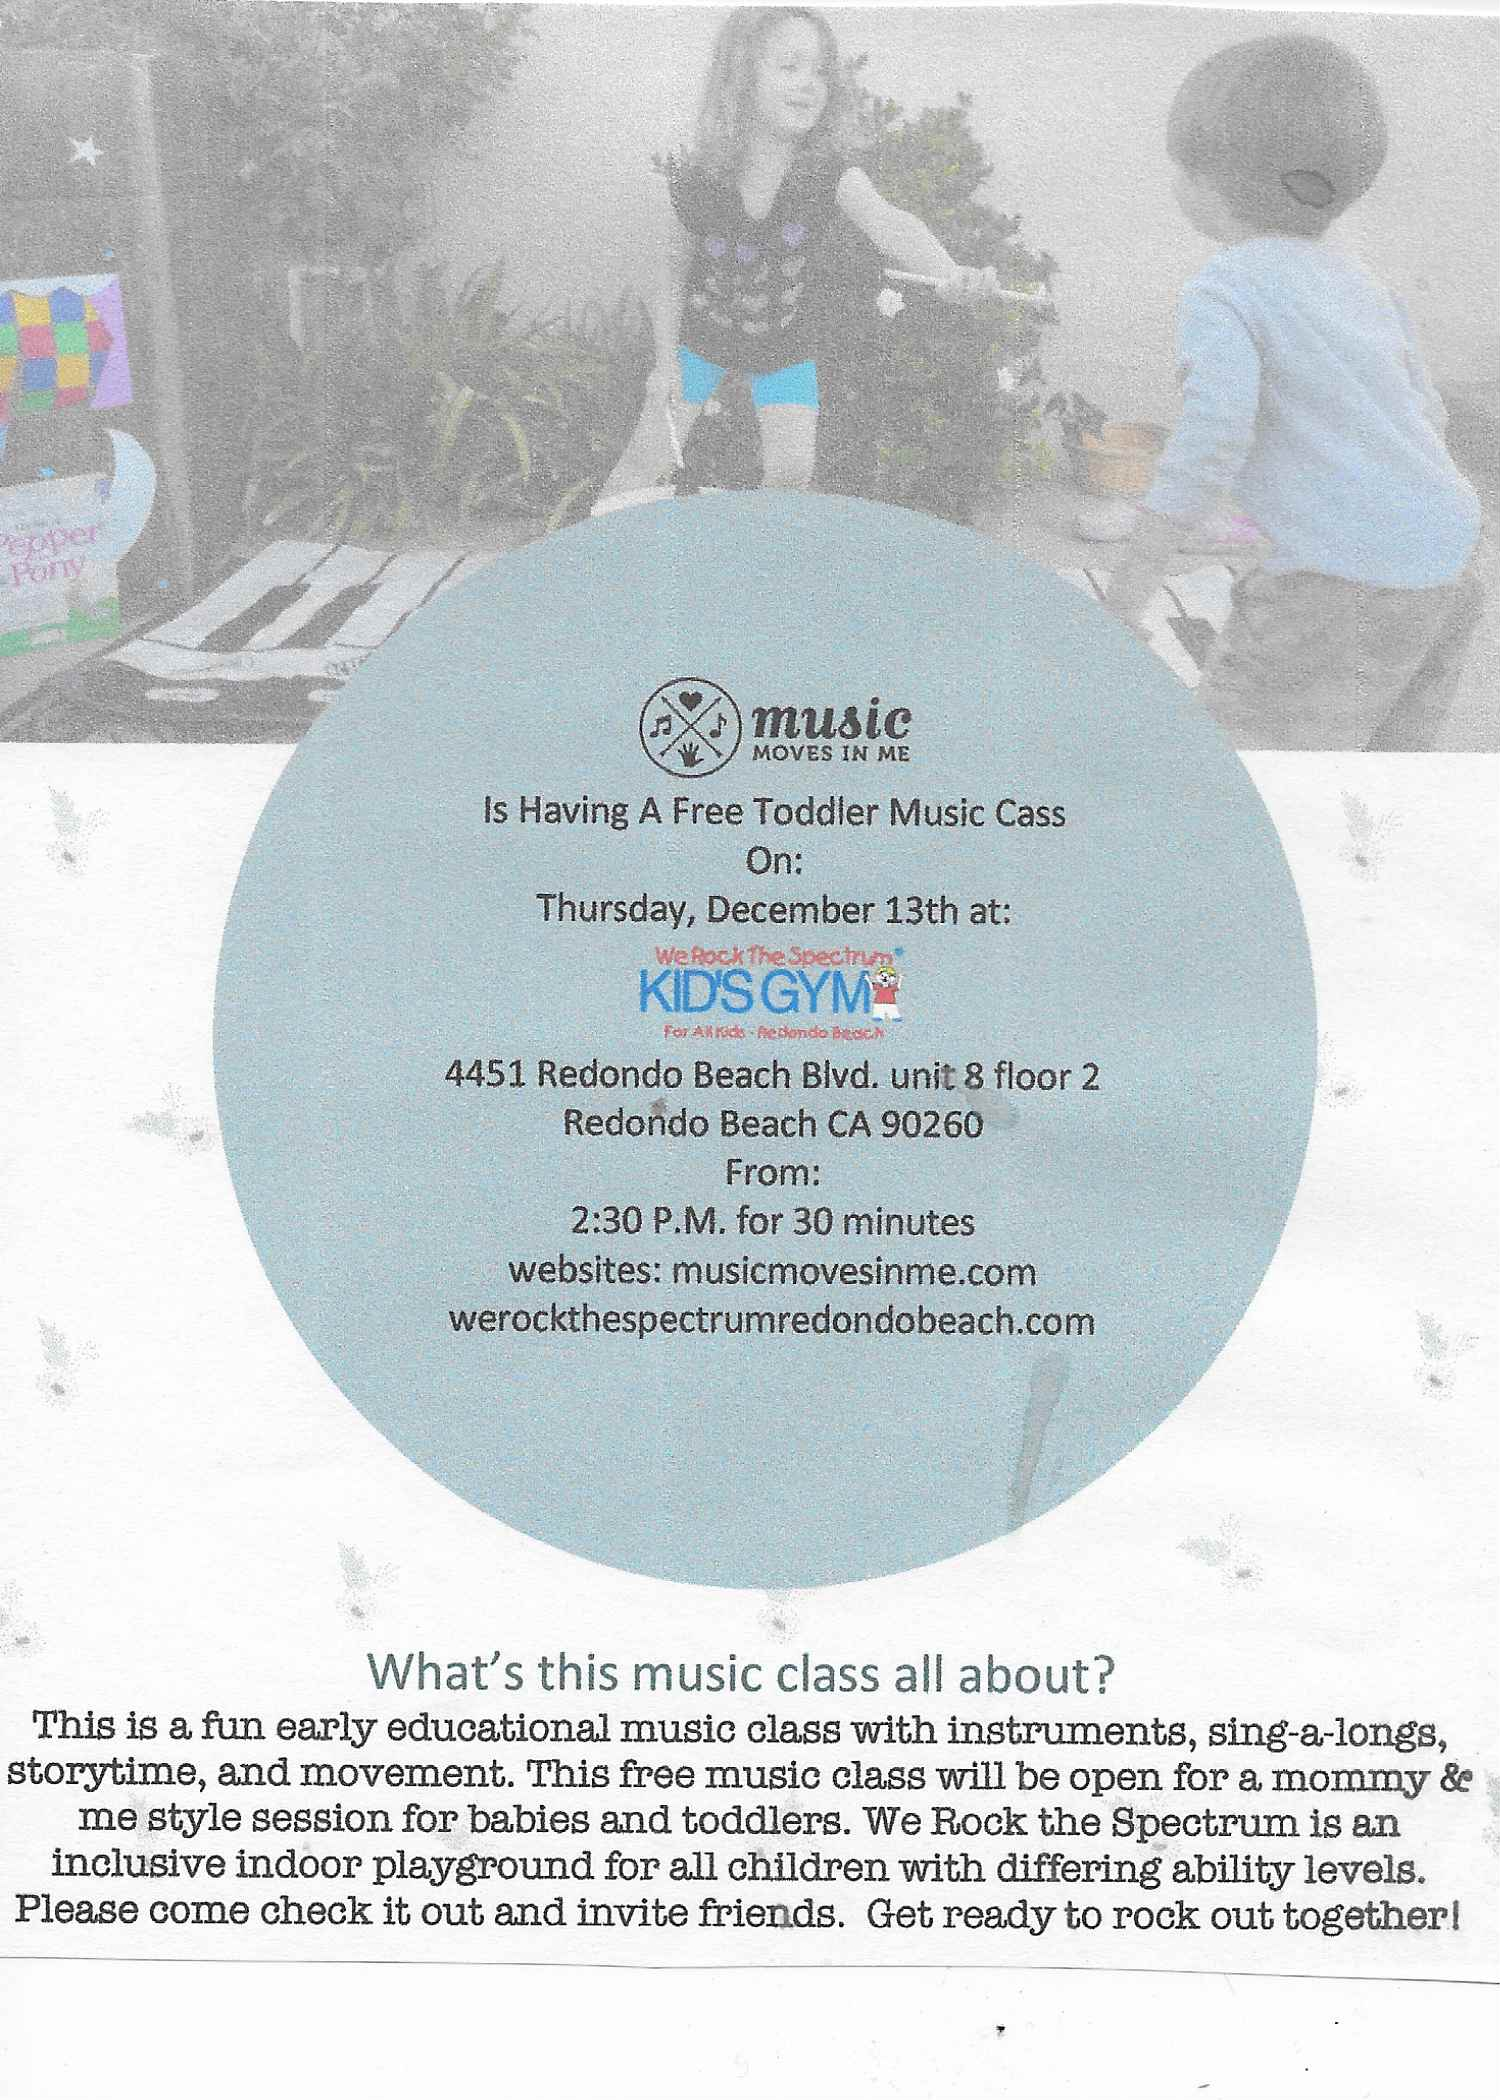 Music Moves In Me Wrts Redondo Beach